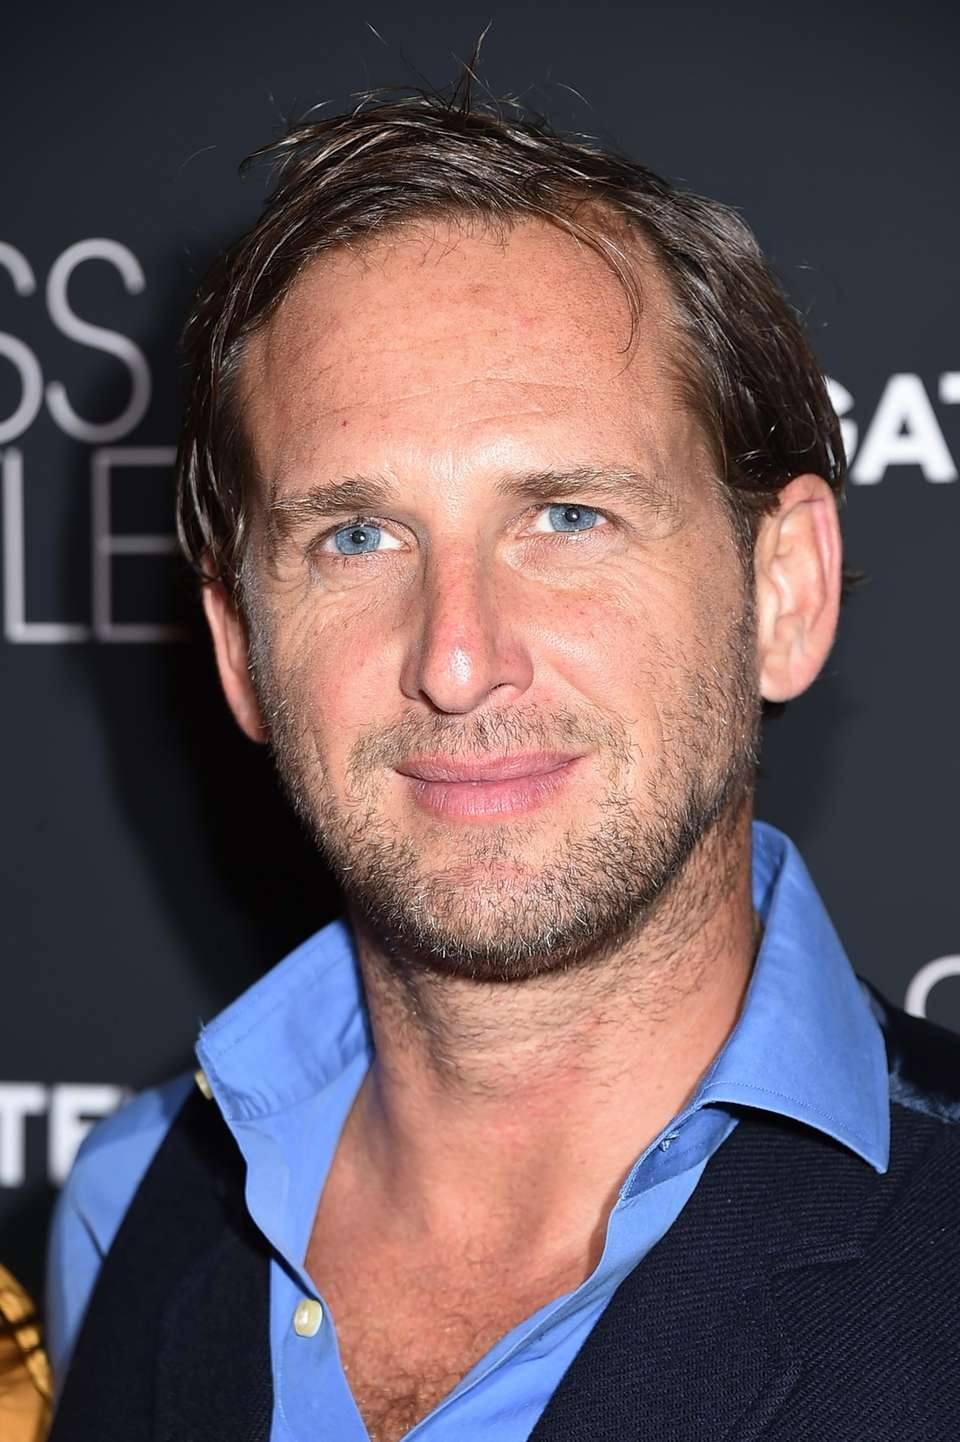 Josh Lucas at the New York City premiere